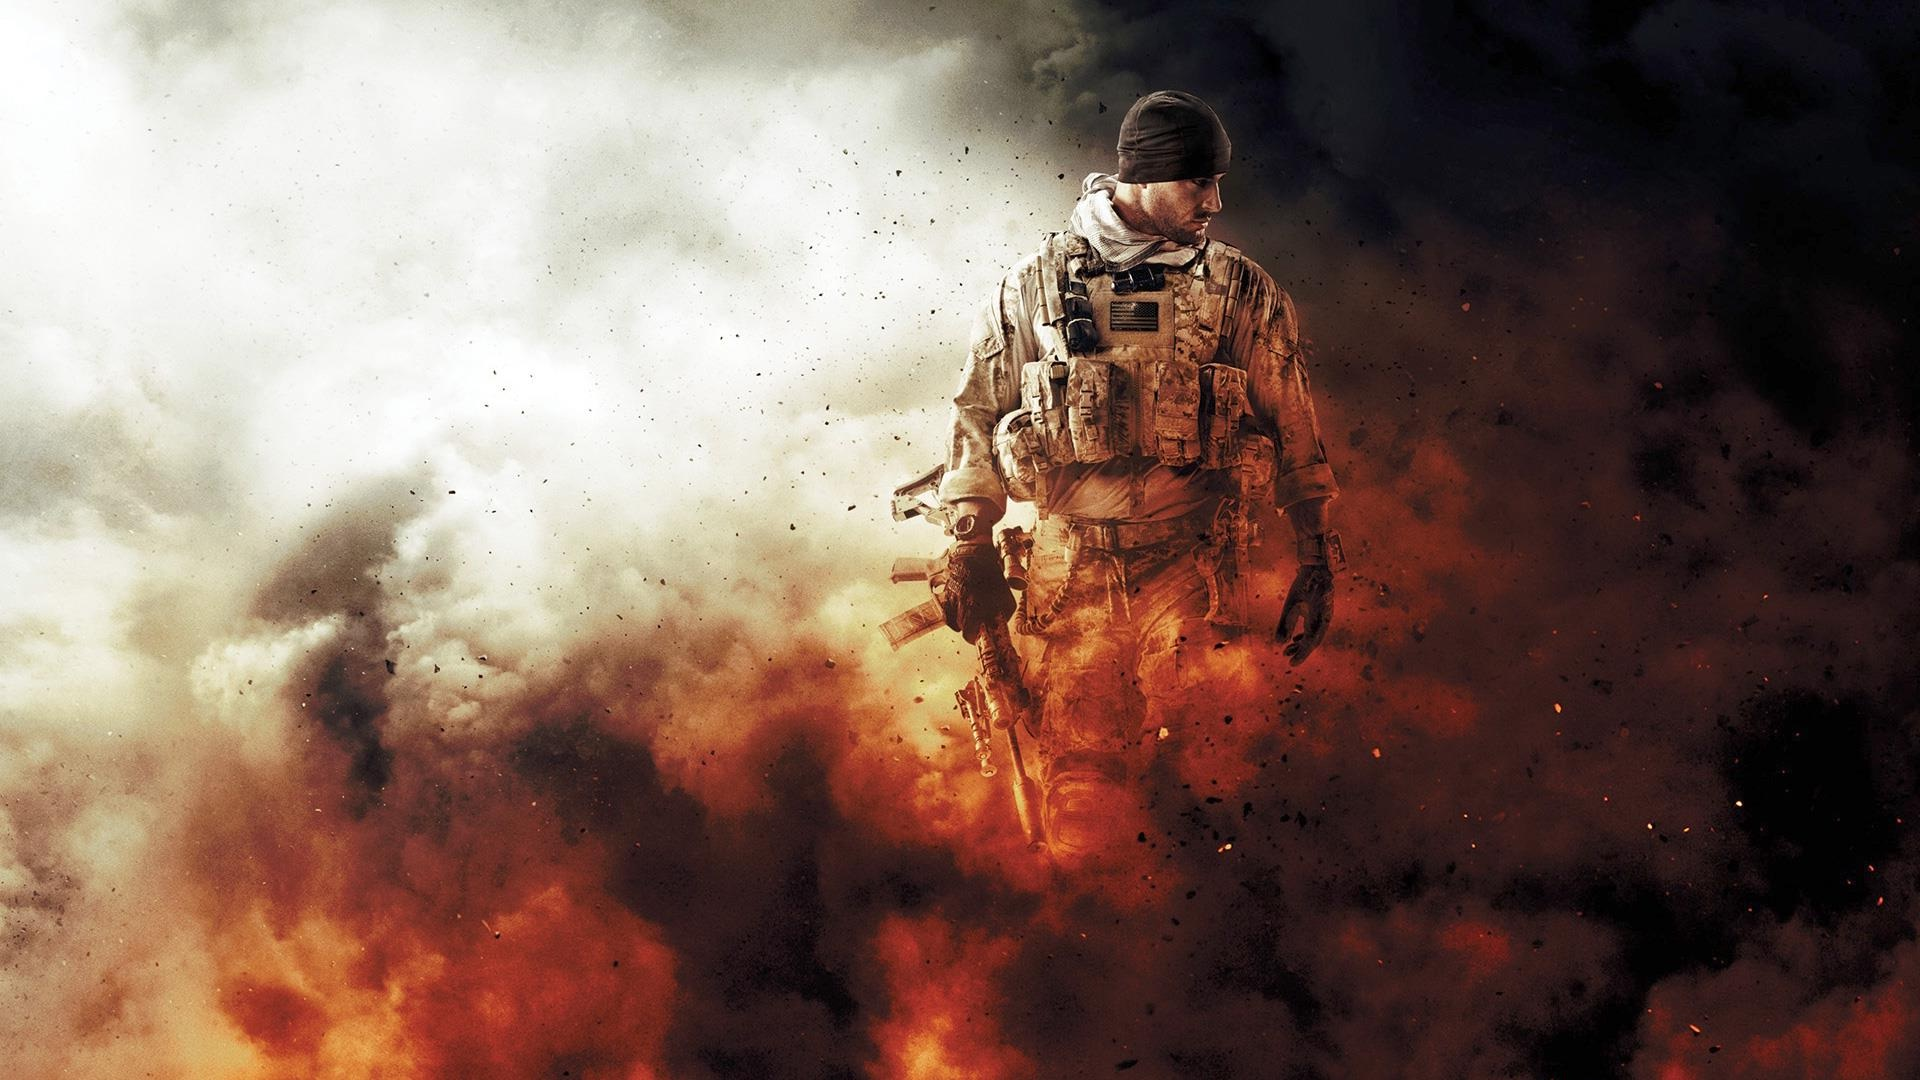 Hd De Medal Of Honor Warfighter 1920x1080 Wallpaper Teahub Io